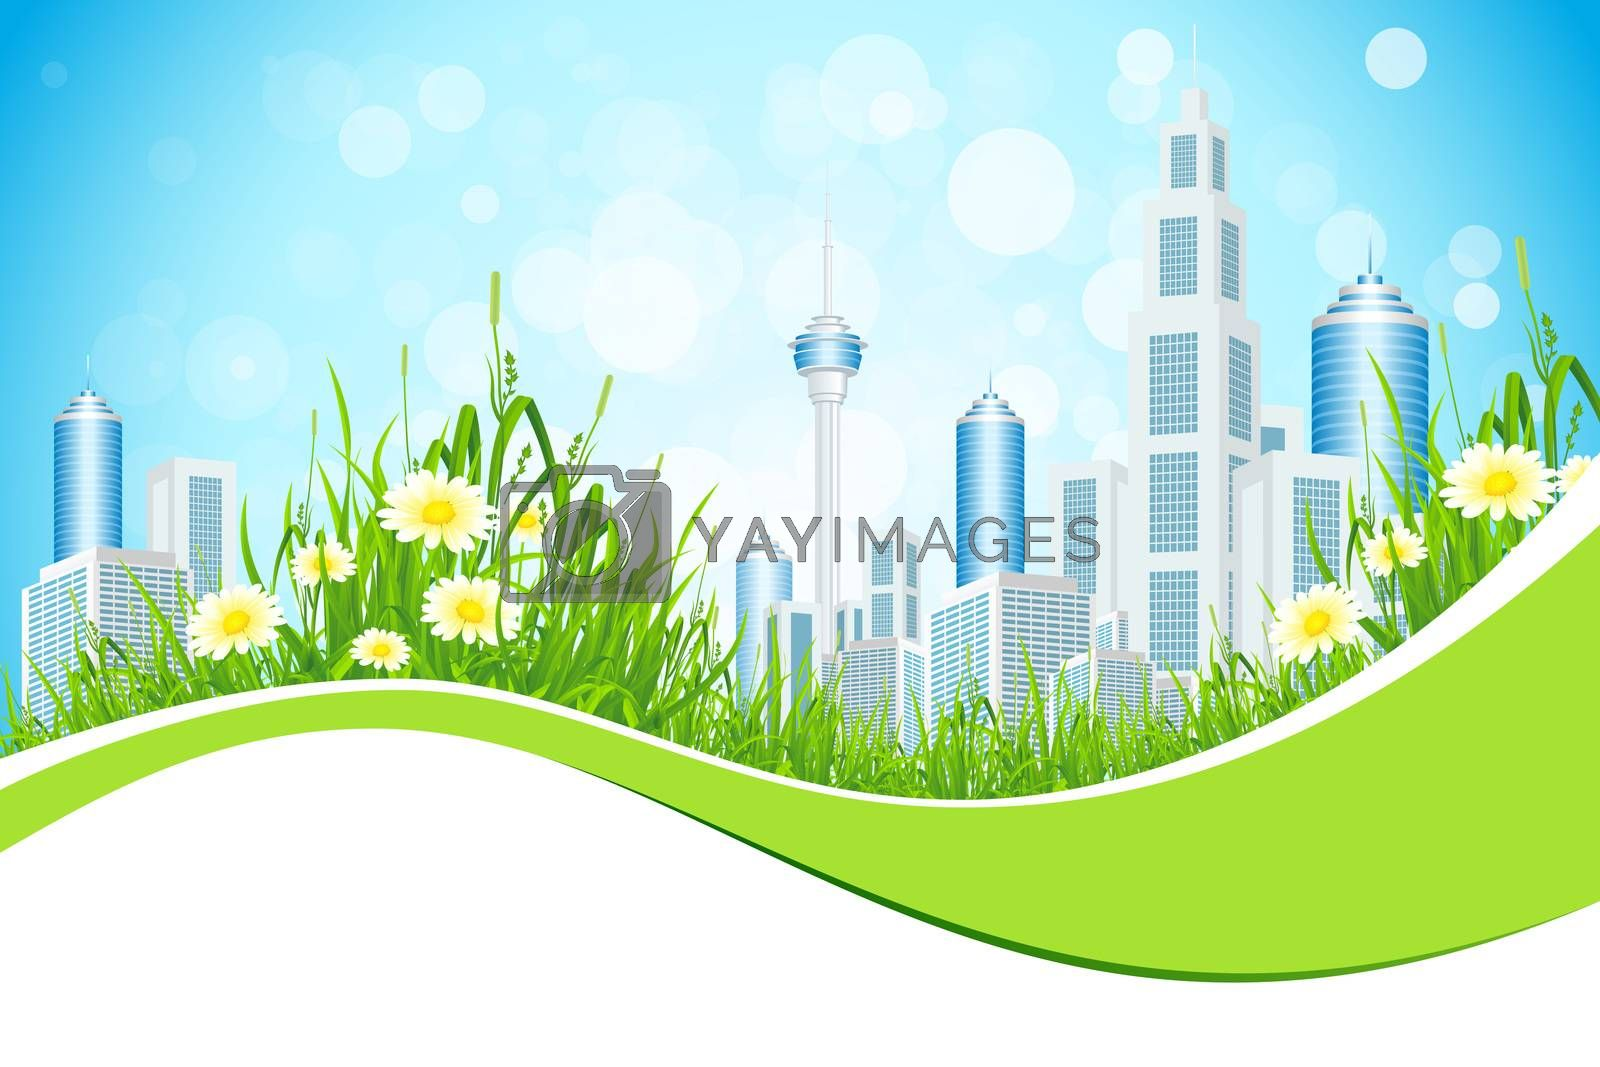 Abstract Background with City Line Flowers and Grass by WaD